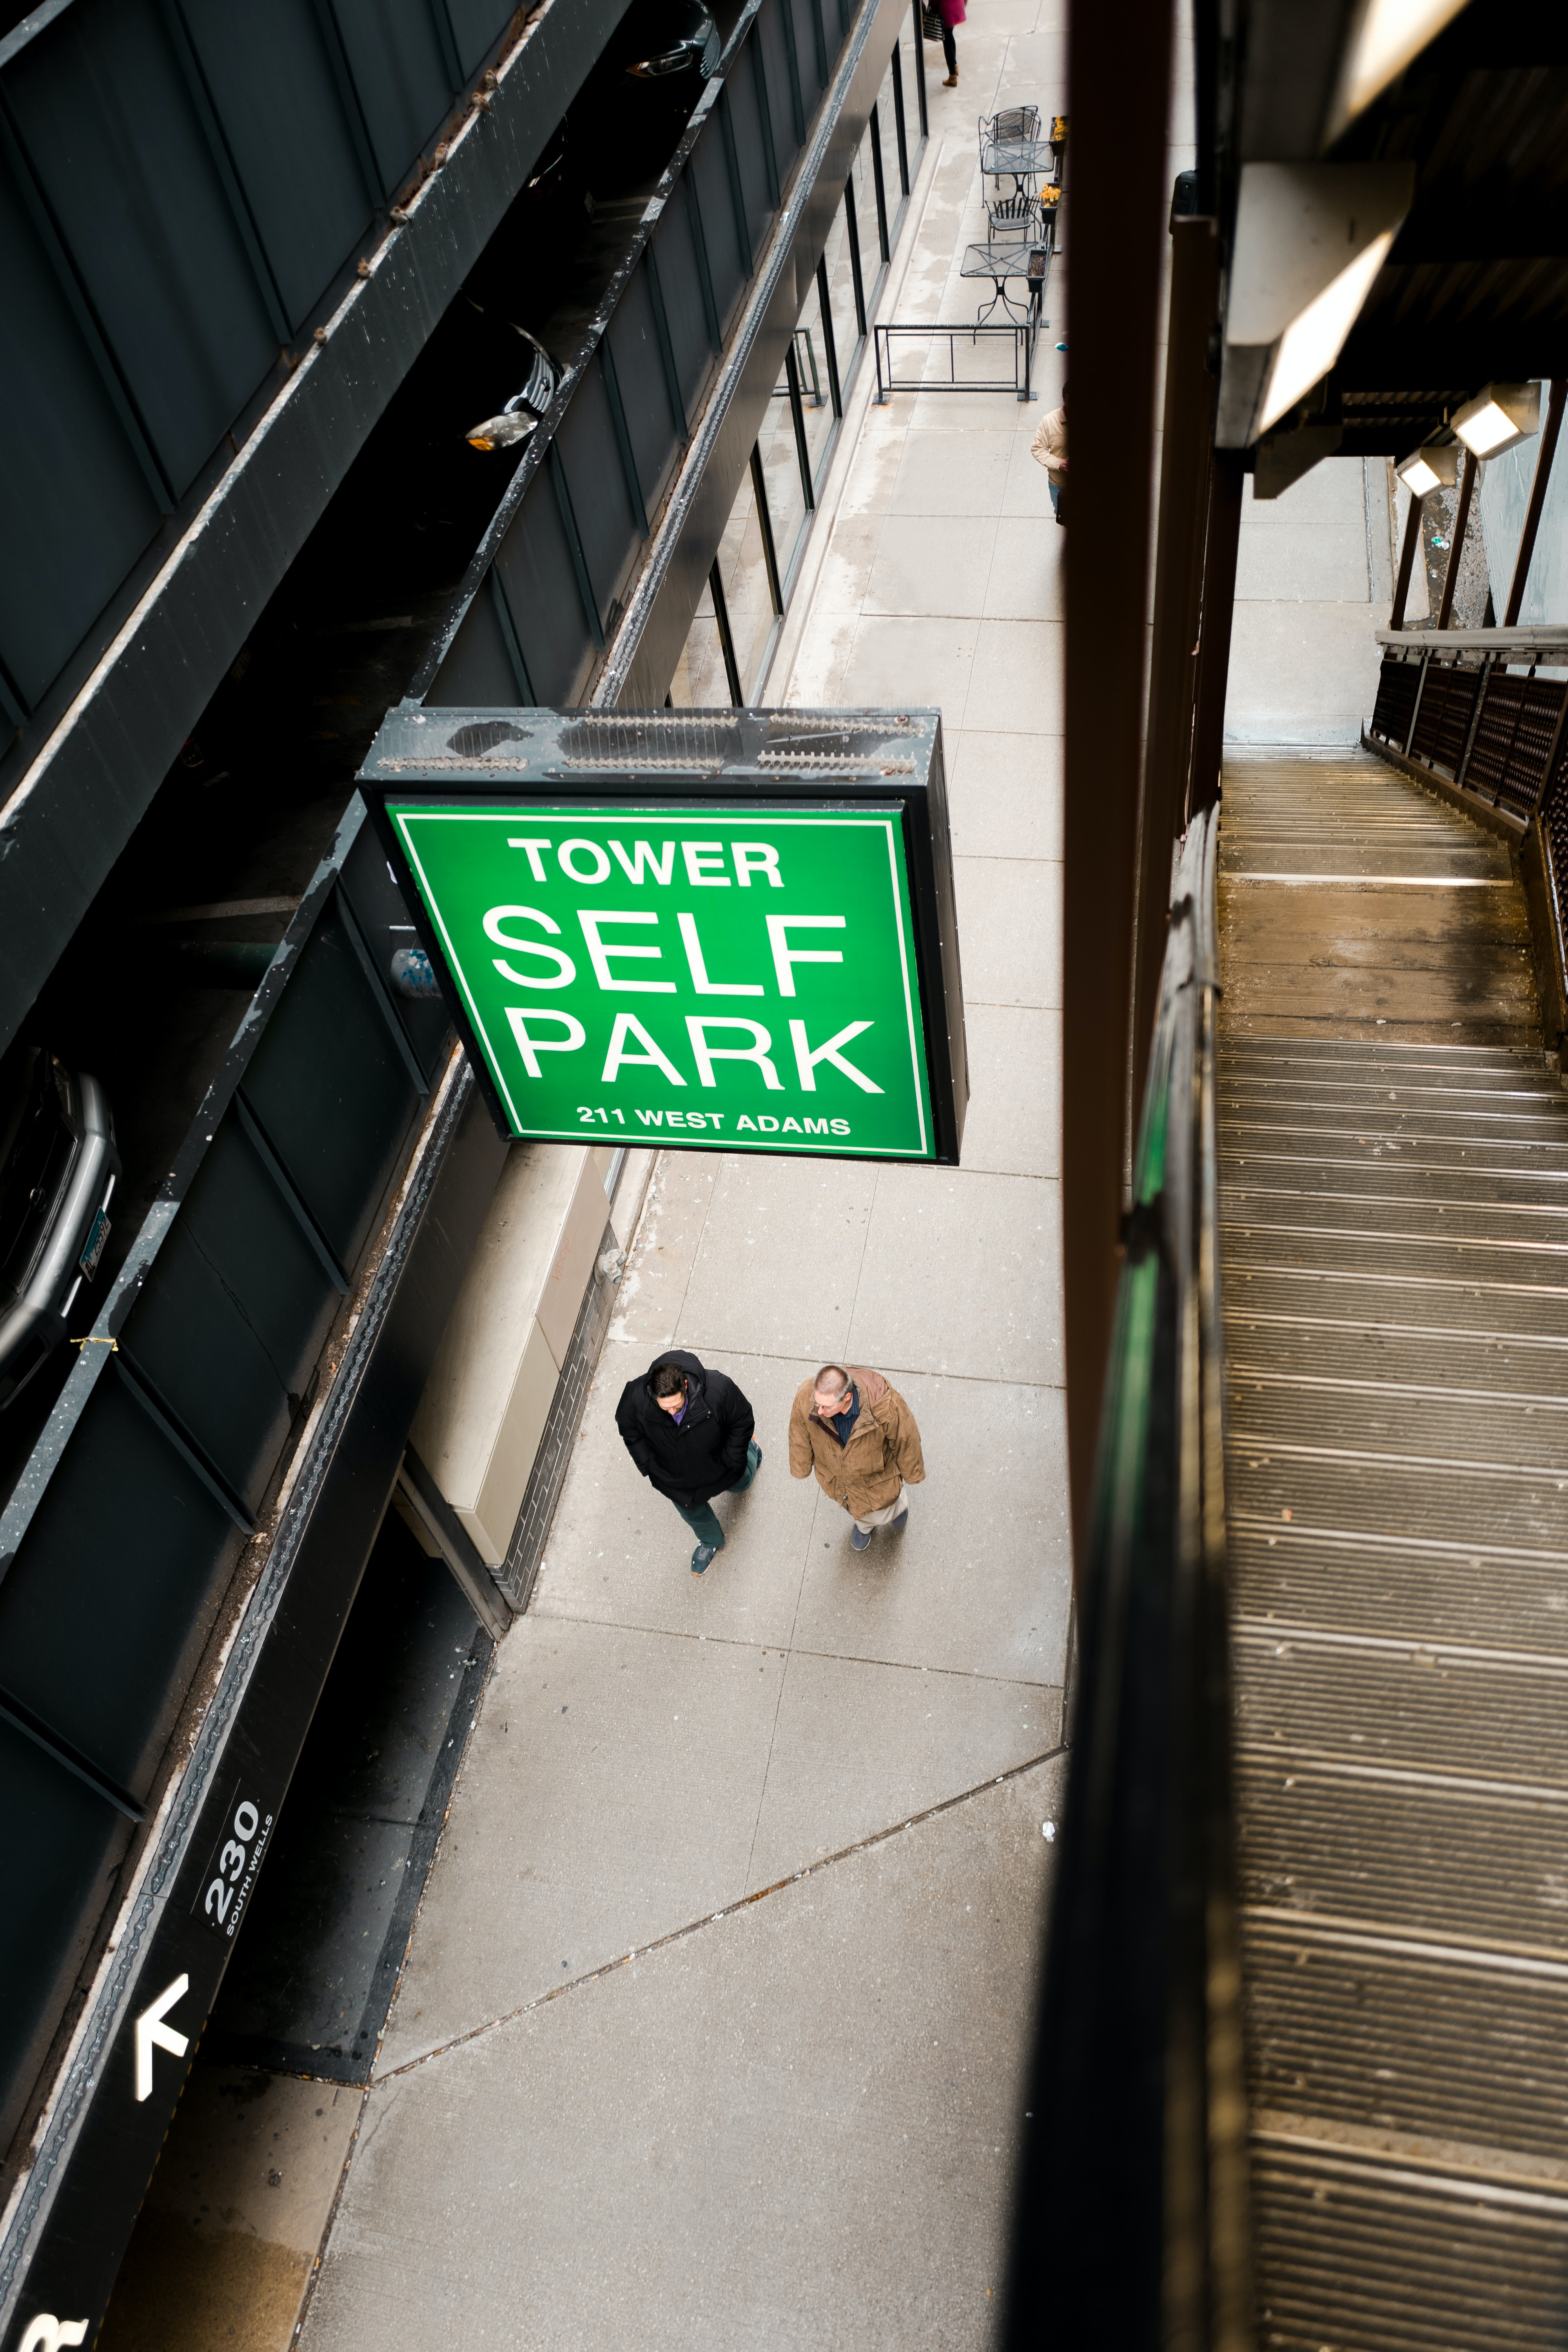 two person's walking underneath Tower Self Park signage